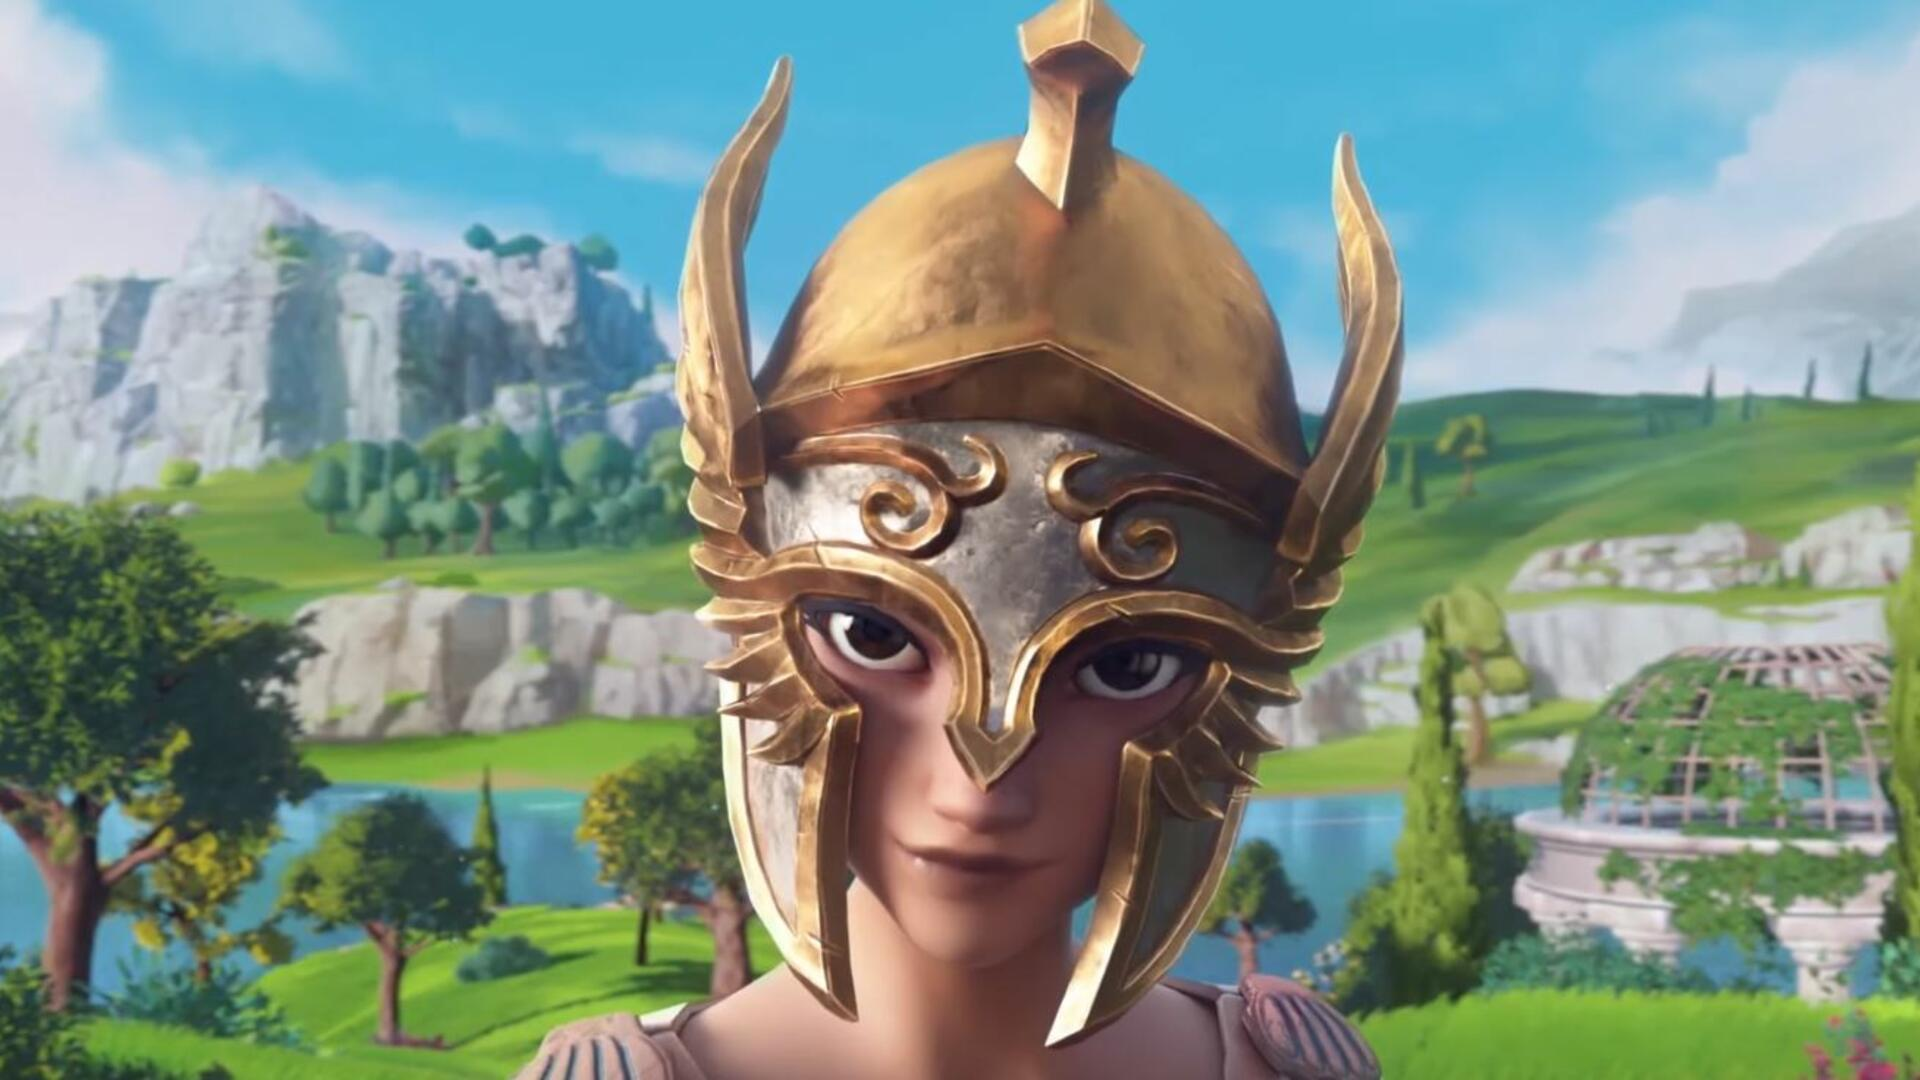 Ubisoft's Gods and Monsters Release Date, Trailer, Platforms - Everything We Know